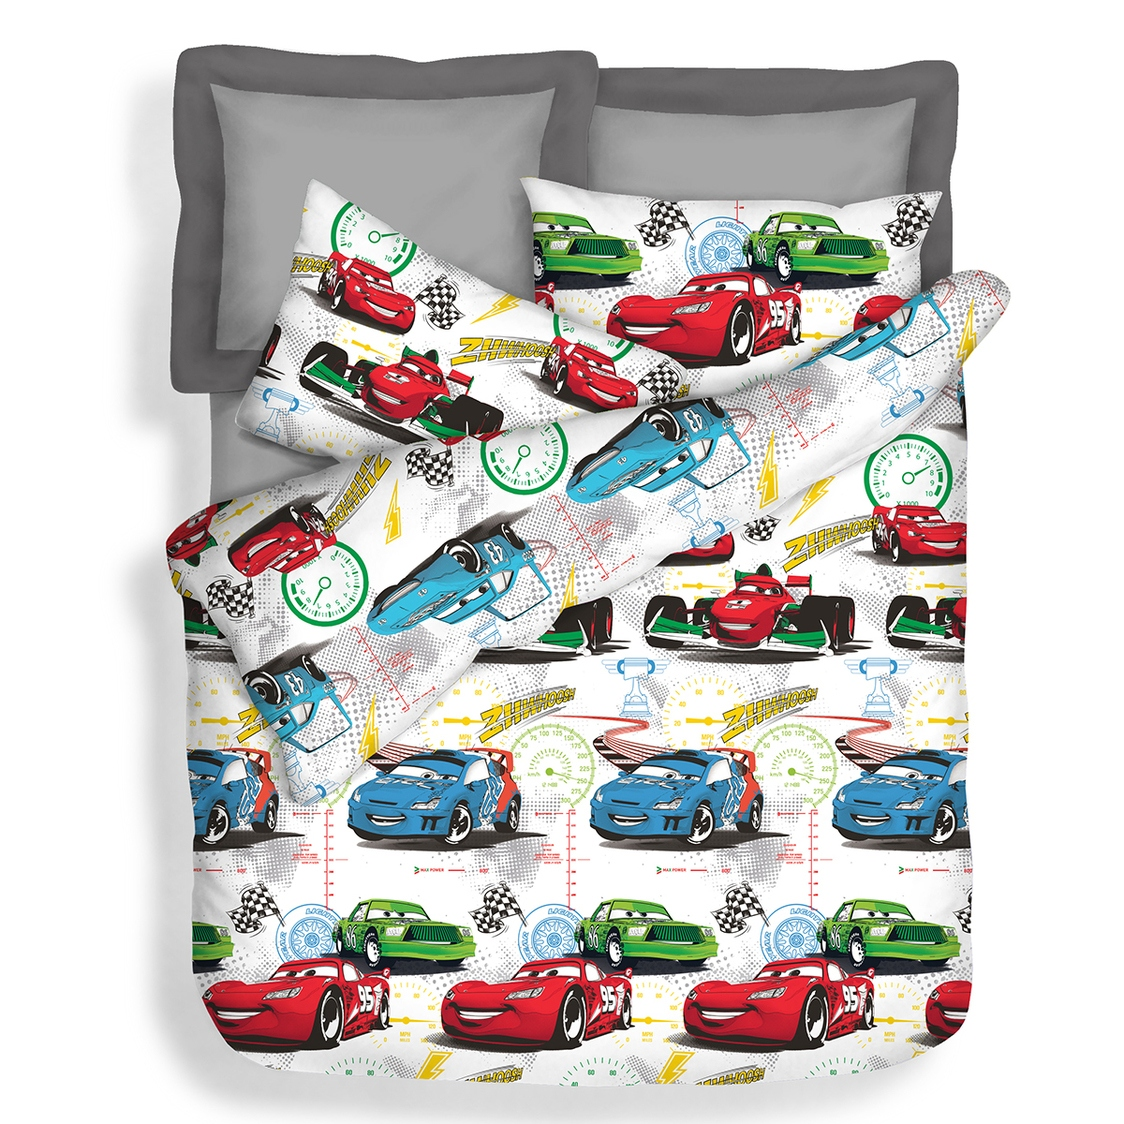 Speed Run Fitted Sheet Set